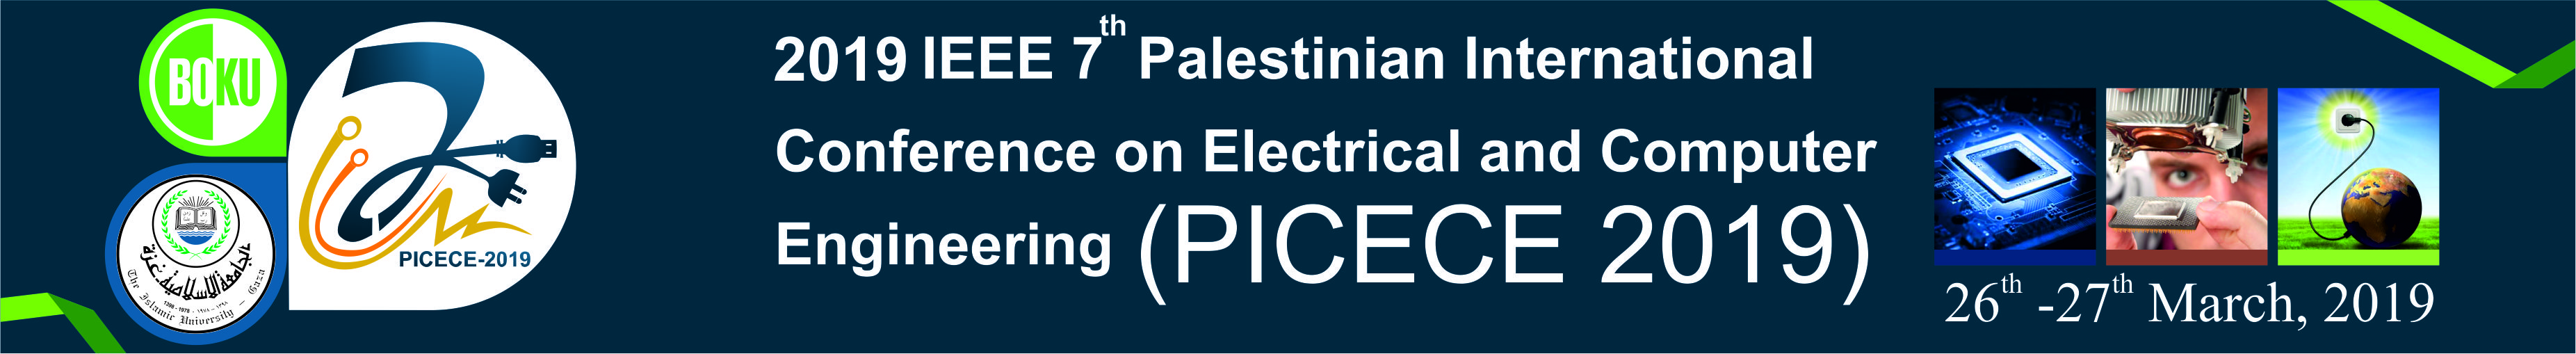 2018 IEEE 7th Palestinian International Conference on Electrical and Computer Engineering (PICECE)